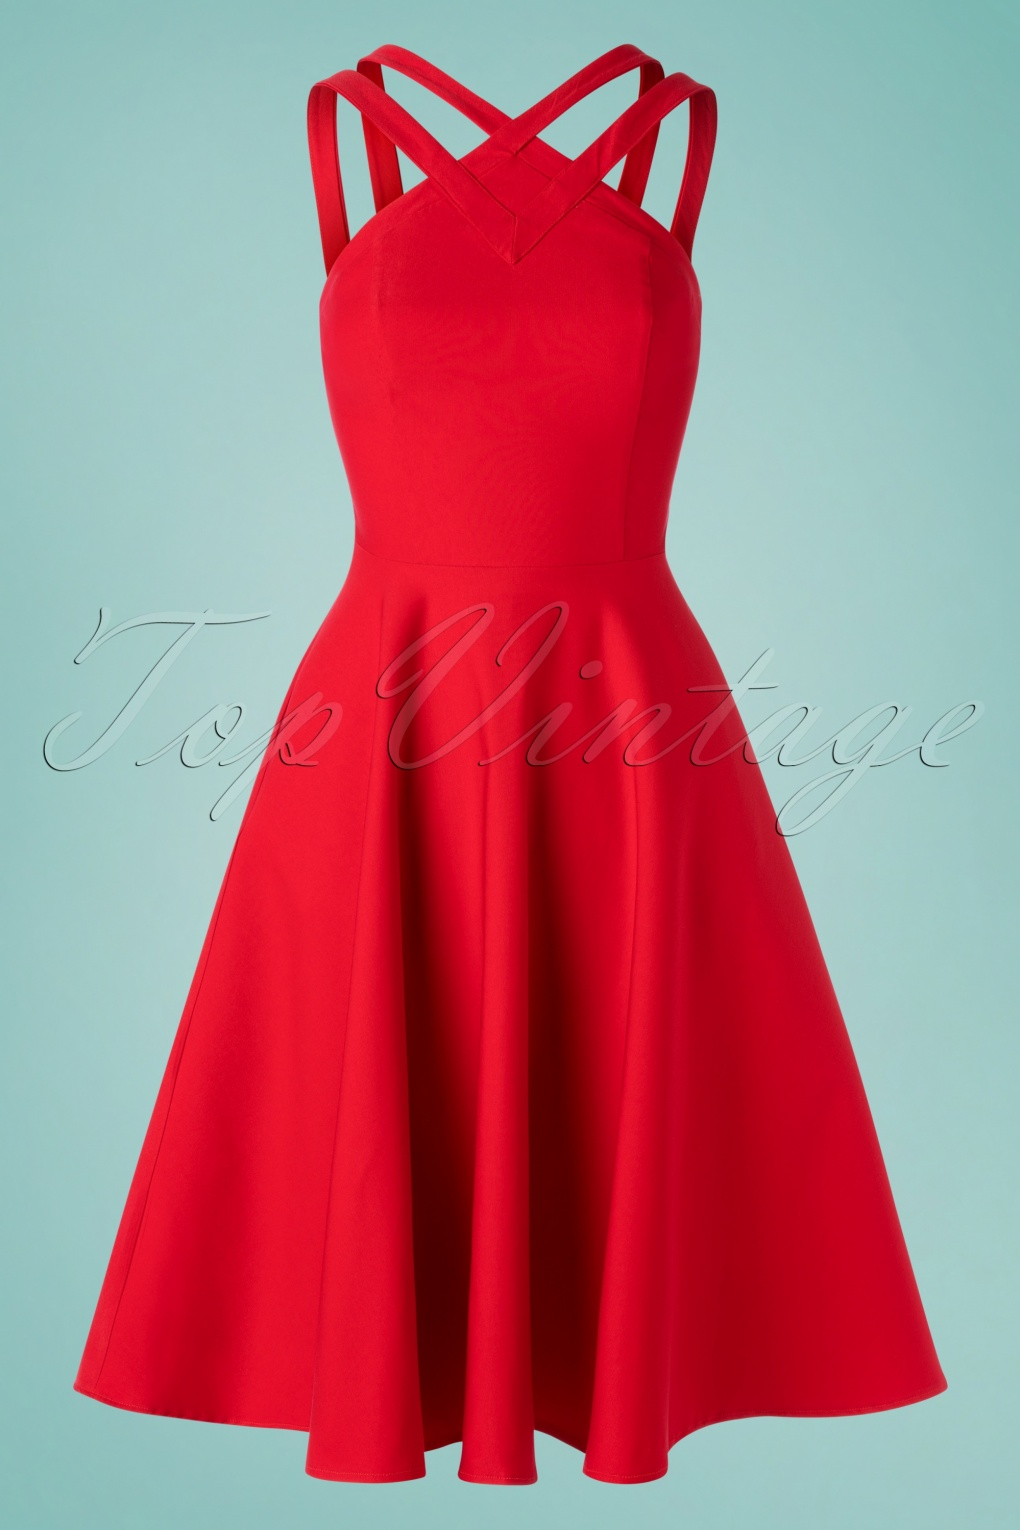 500 Vintage Style Dresses for Sale | Vintage Inspired Dresses 50s Pretty Woman Swing Dress in Red £105.24 AT vintagedancer.com